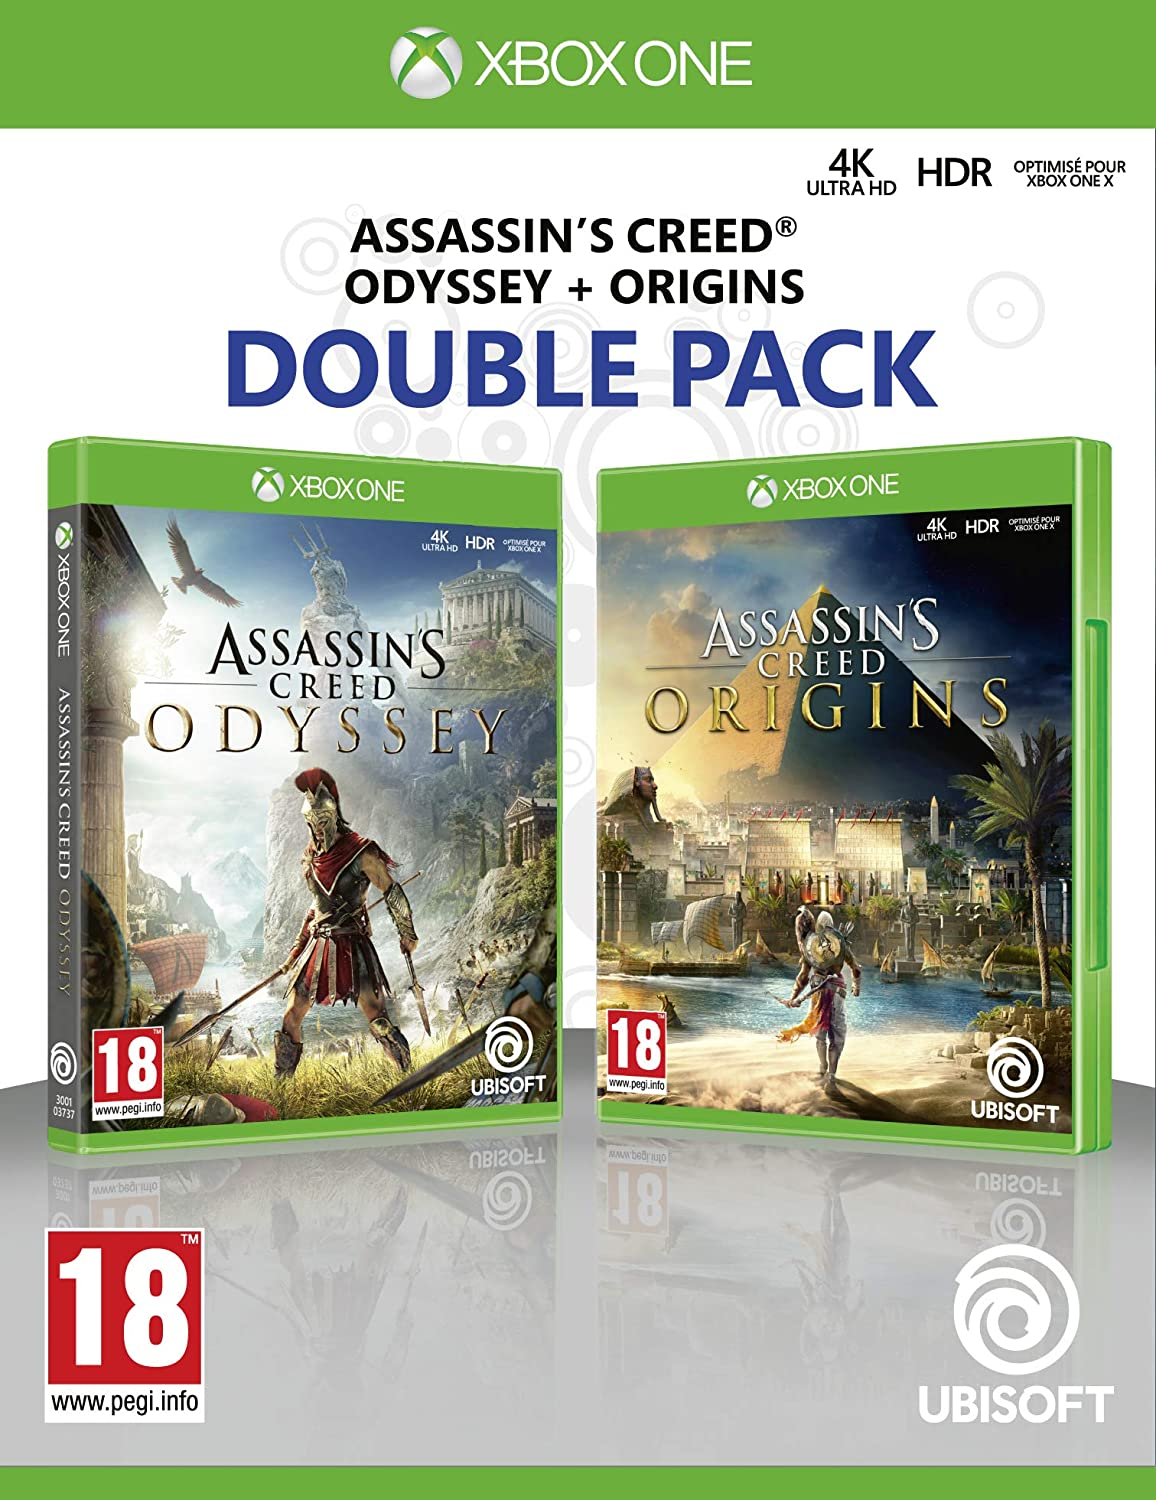 Double Pack: Assassins Creed Odyssey + Assassins Creed Origins: Amazon.es: Videojuegos